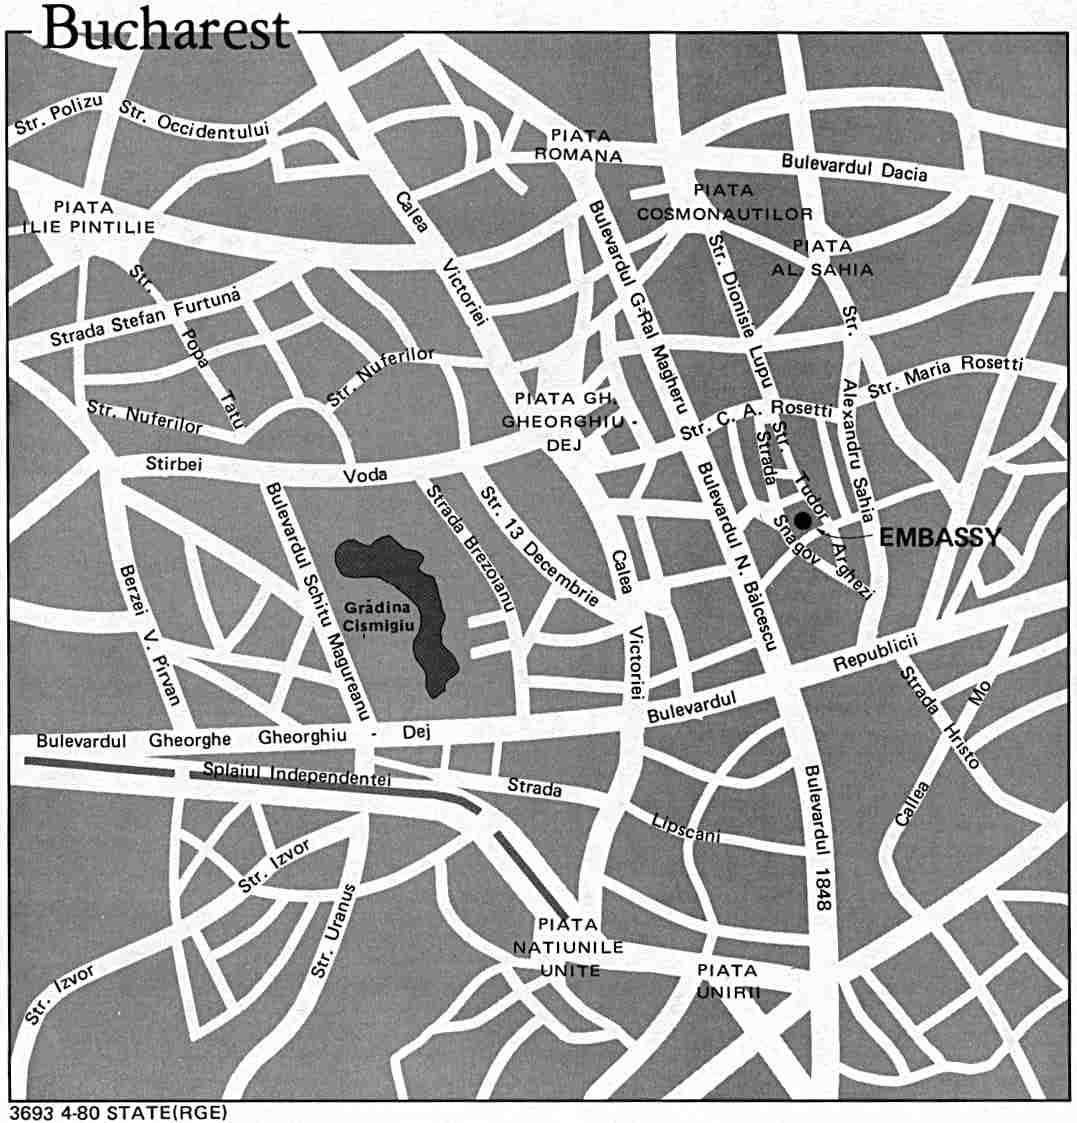 Bucharest City Map, Romania